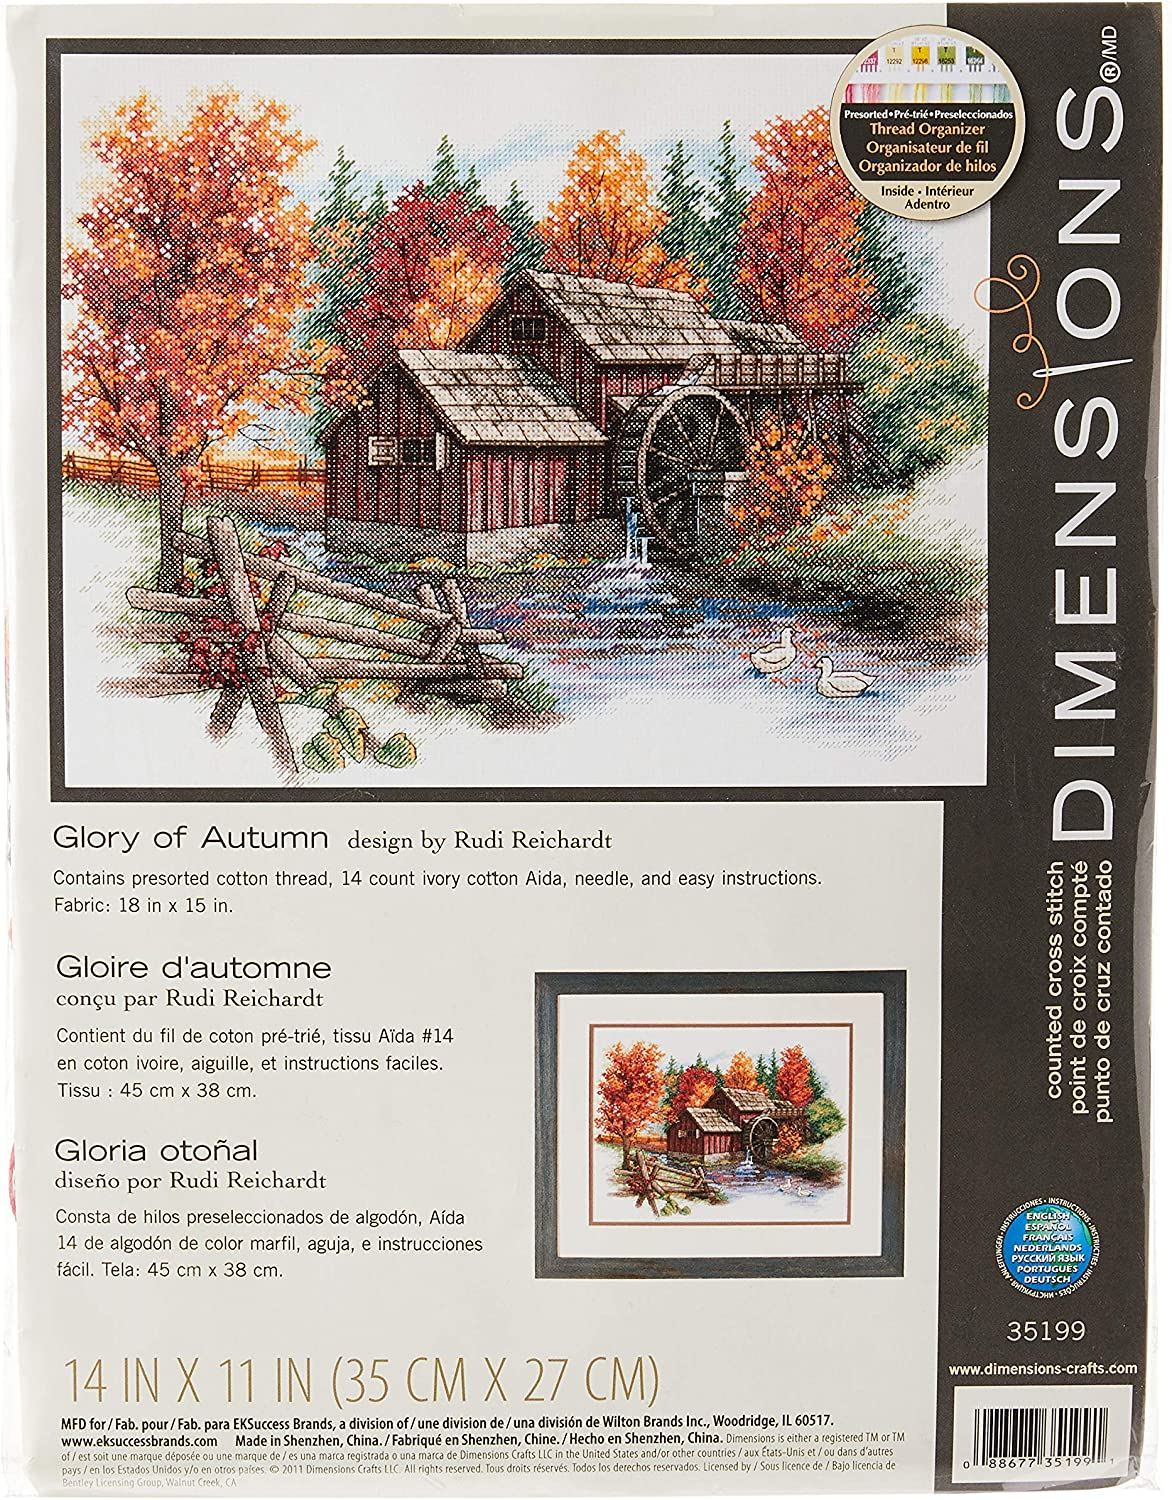 Counted Cross Stitch Kit CLASSIC DESIGN Garden house